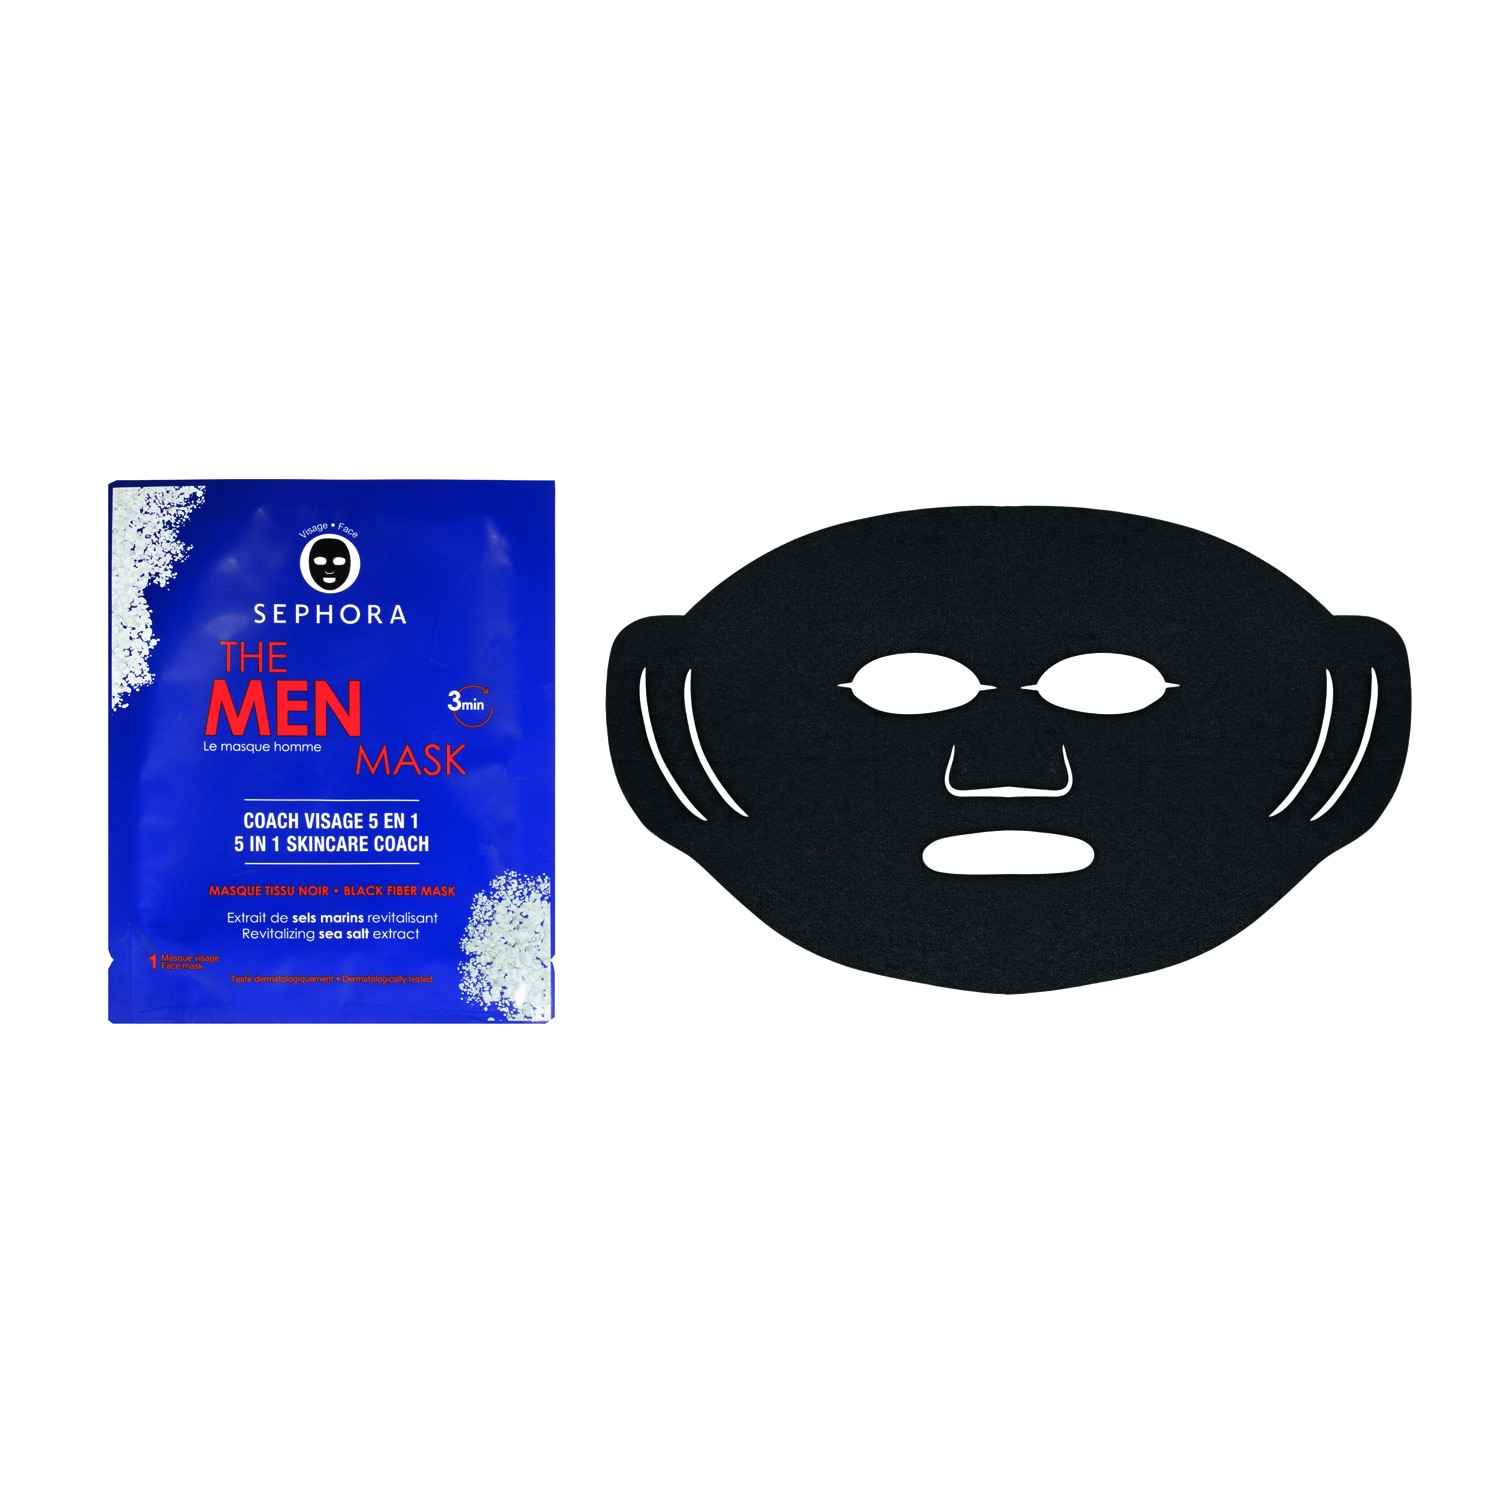 THE MEN MASK (MASCARILLA FACIAL PARA HOMBRE)